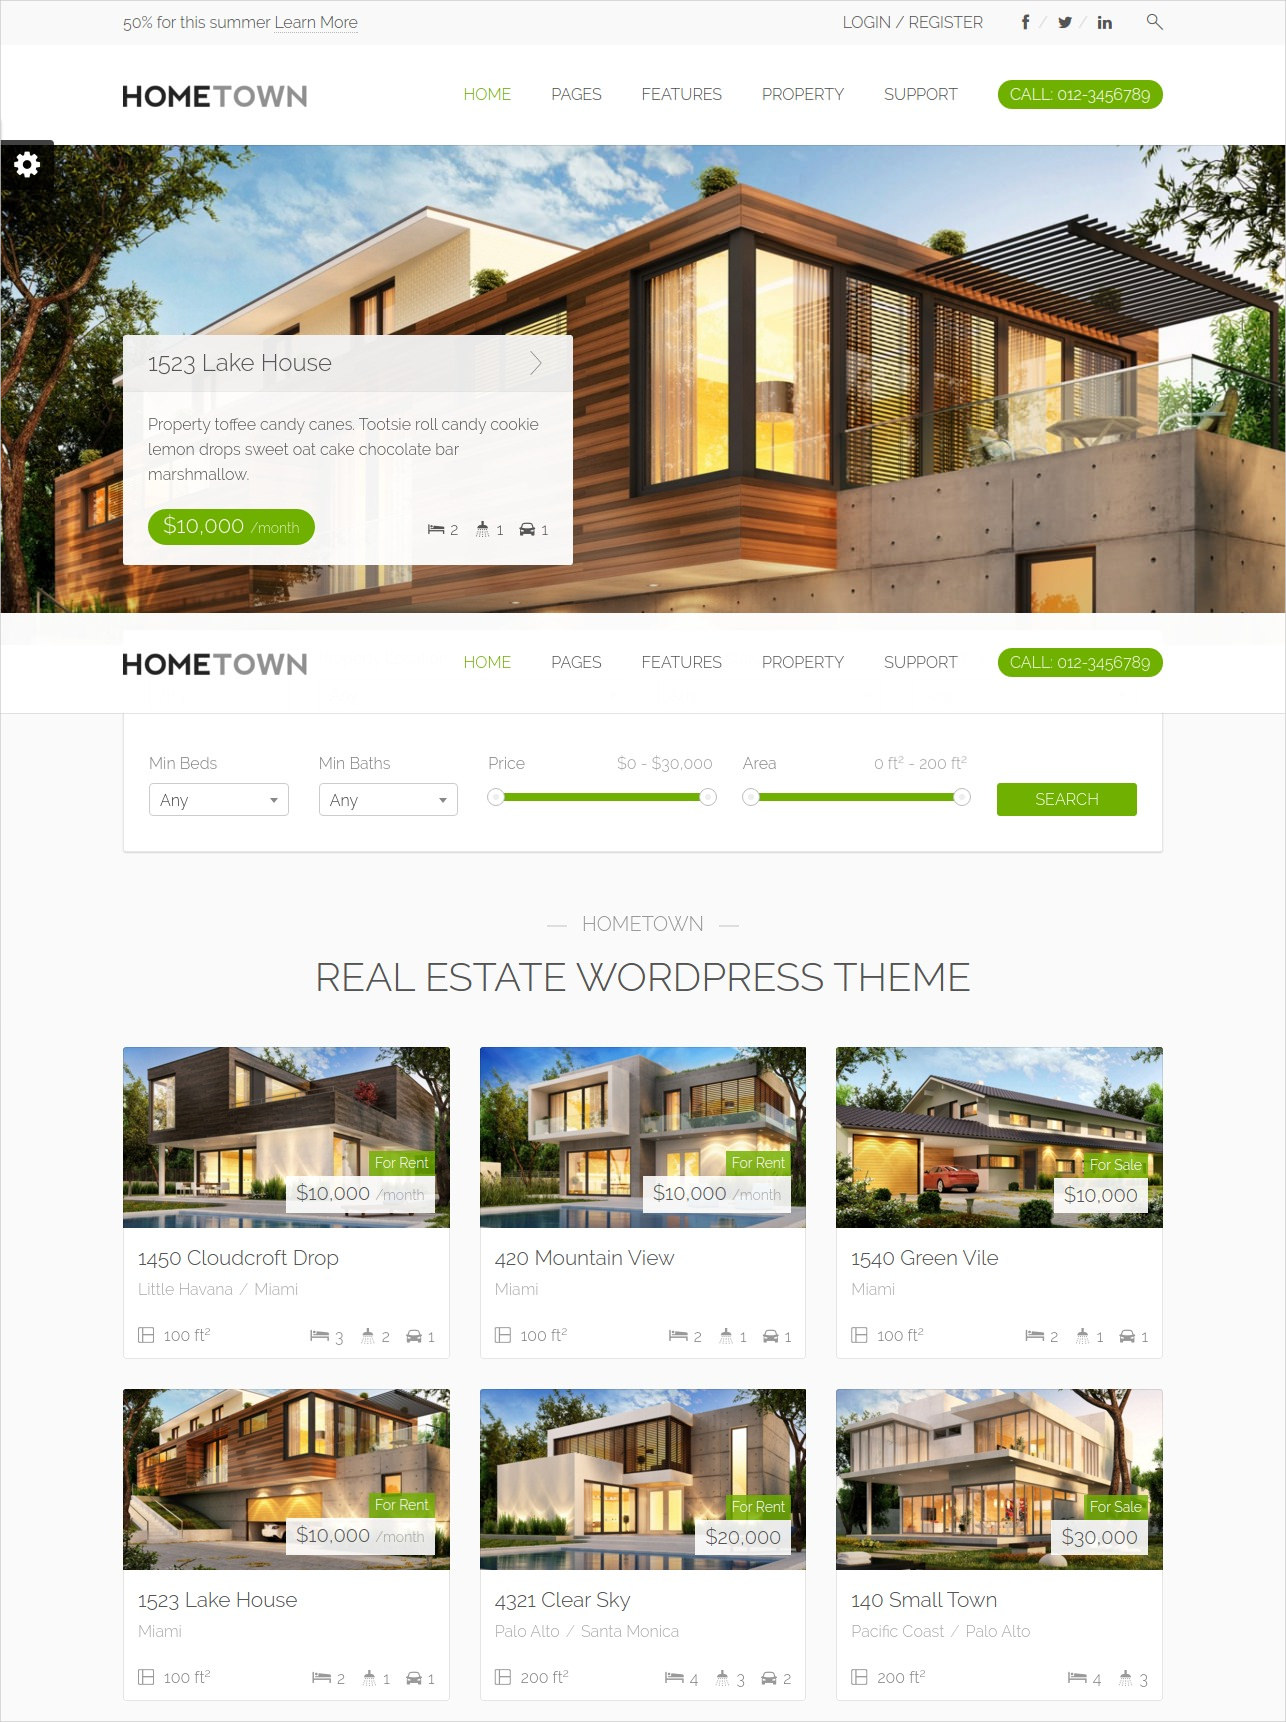 home town real estate wordpress theme